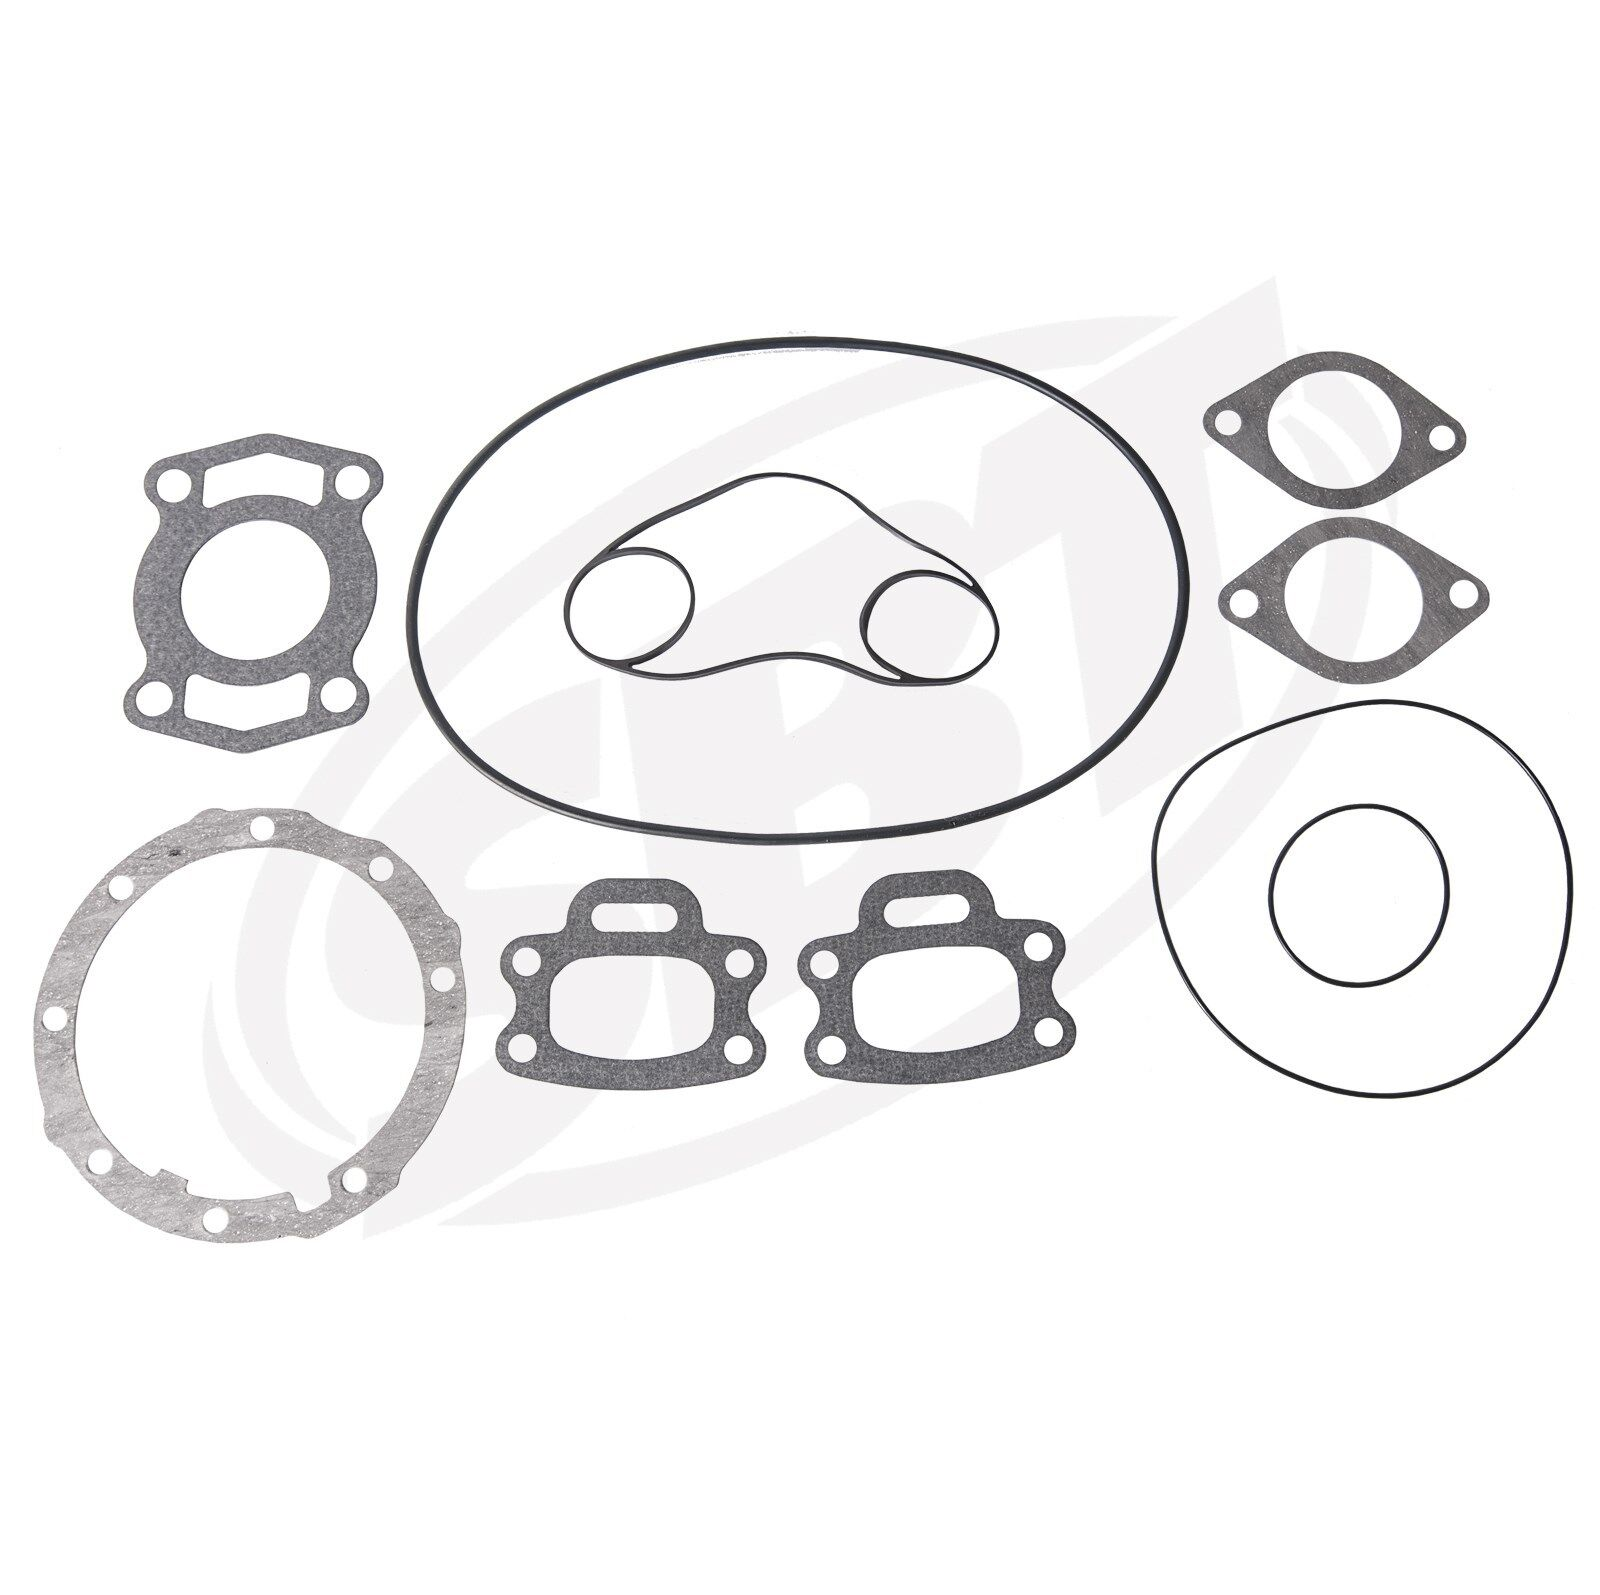 Seadoo Installation Gasket Kit 717/720 Dual Carb HX XP GTI